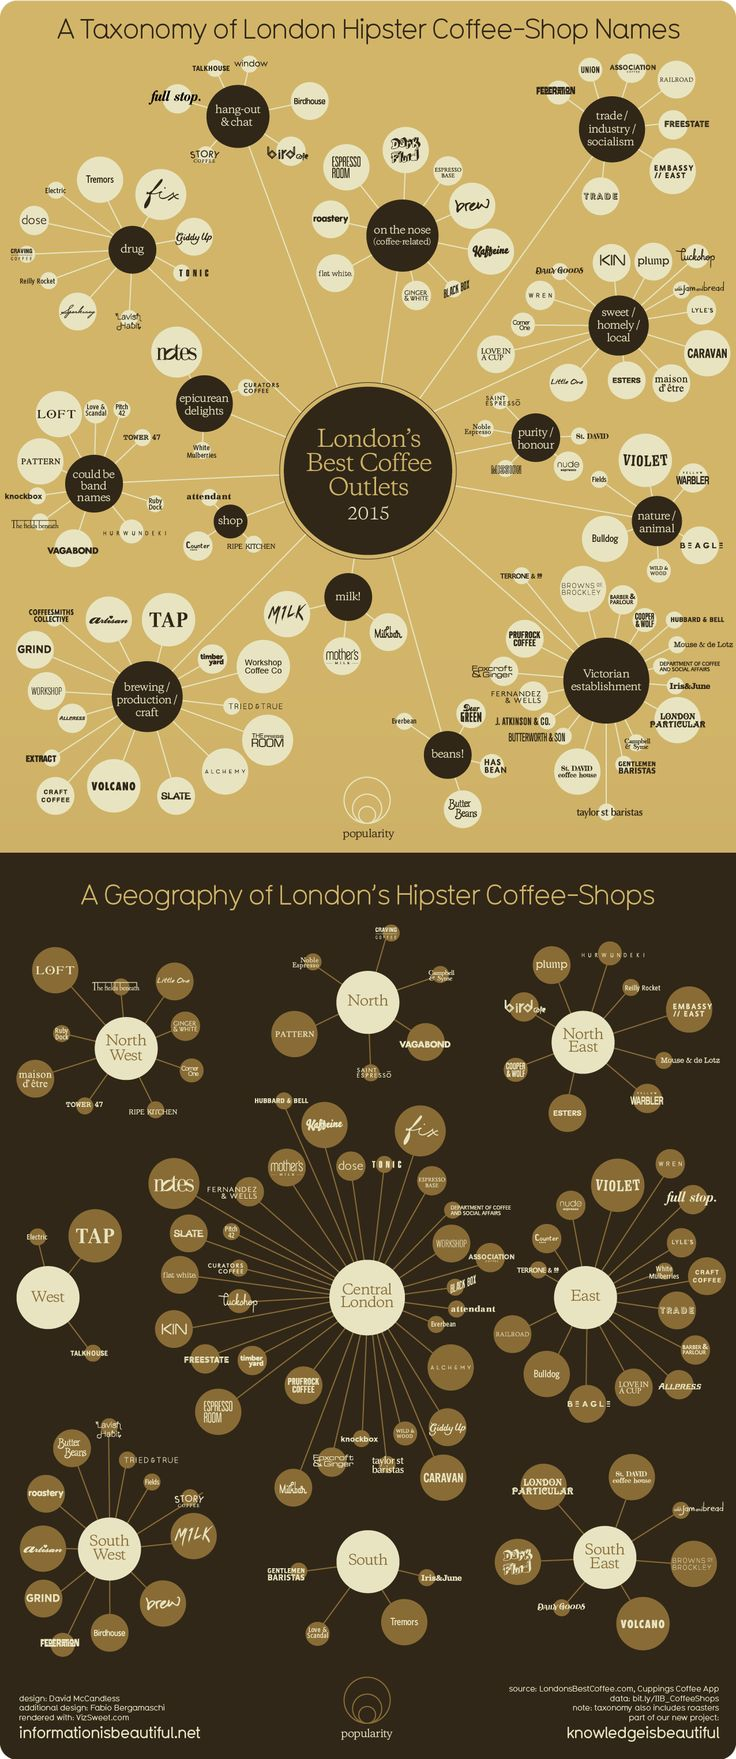 A Taxonomy of Hipster Coffee-Shop Names | Information is Beautiful